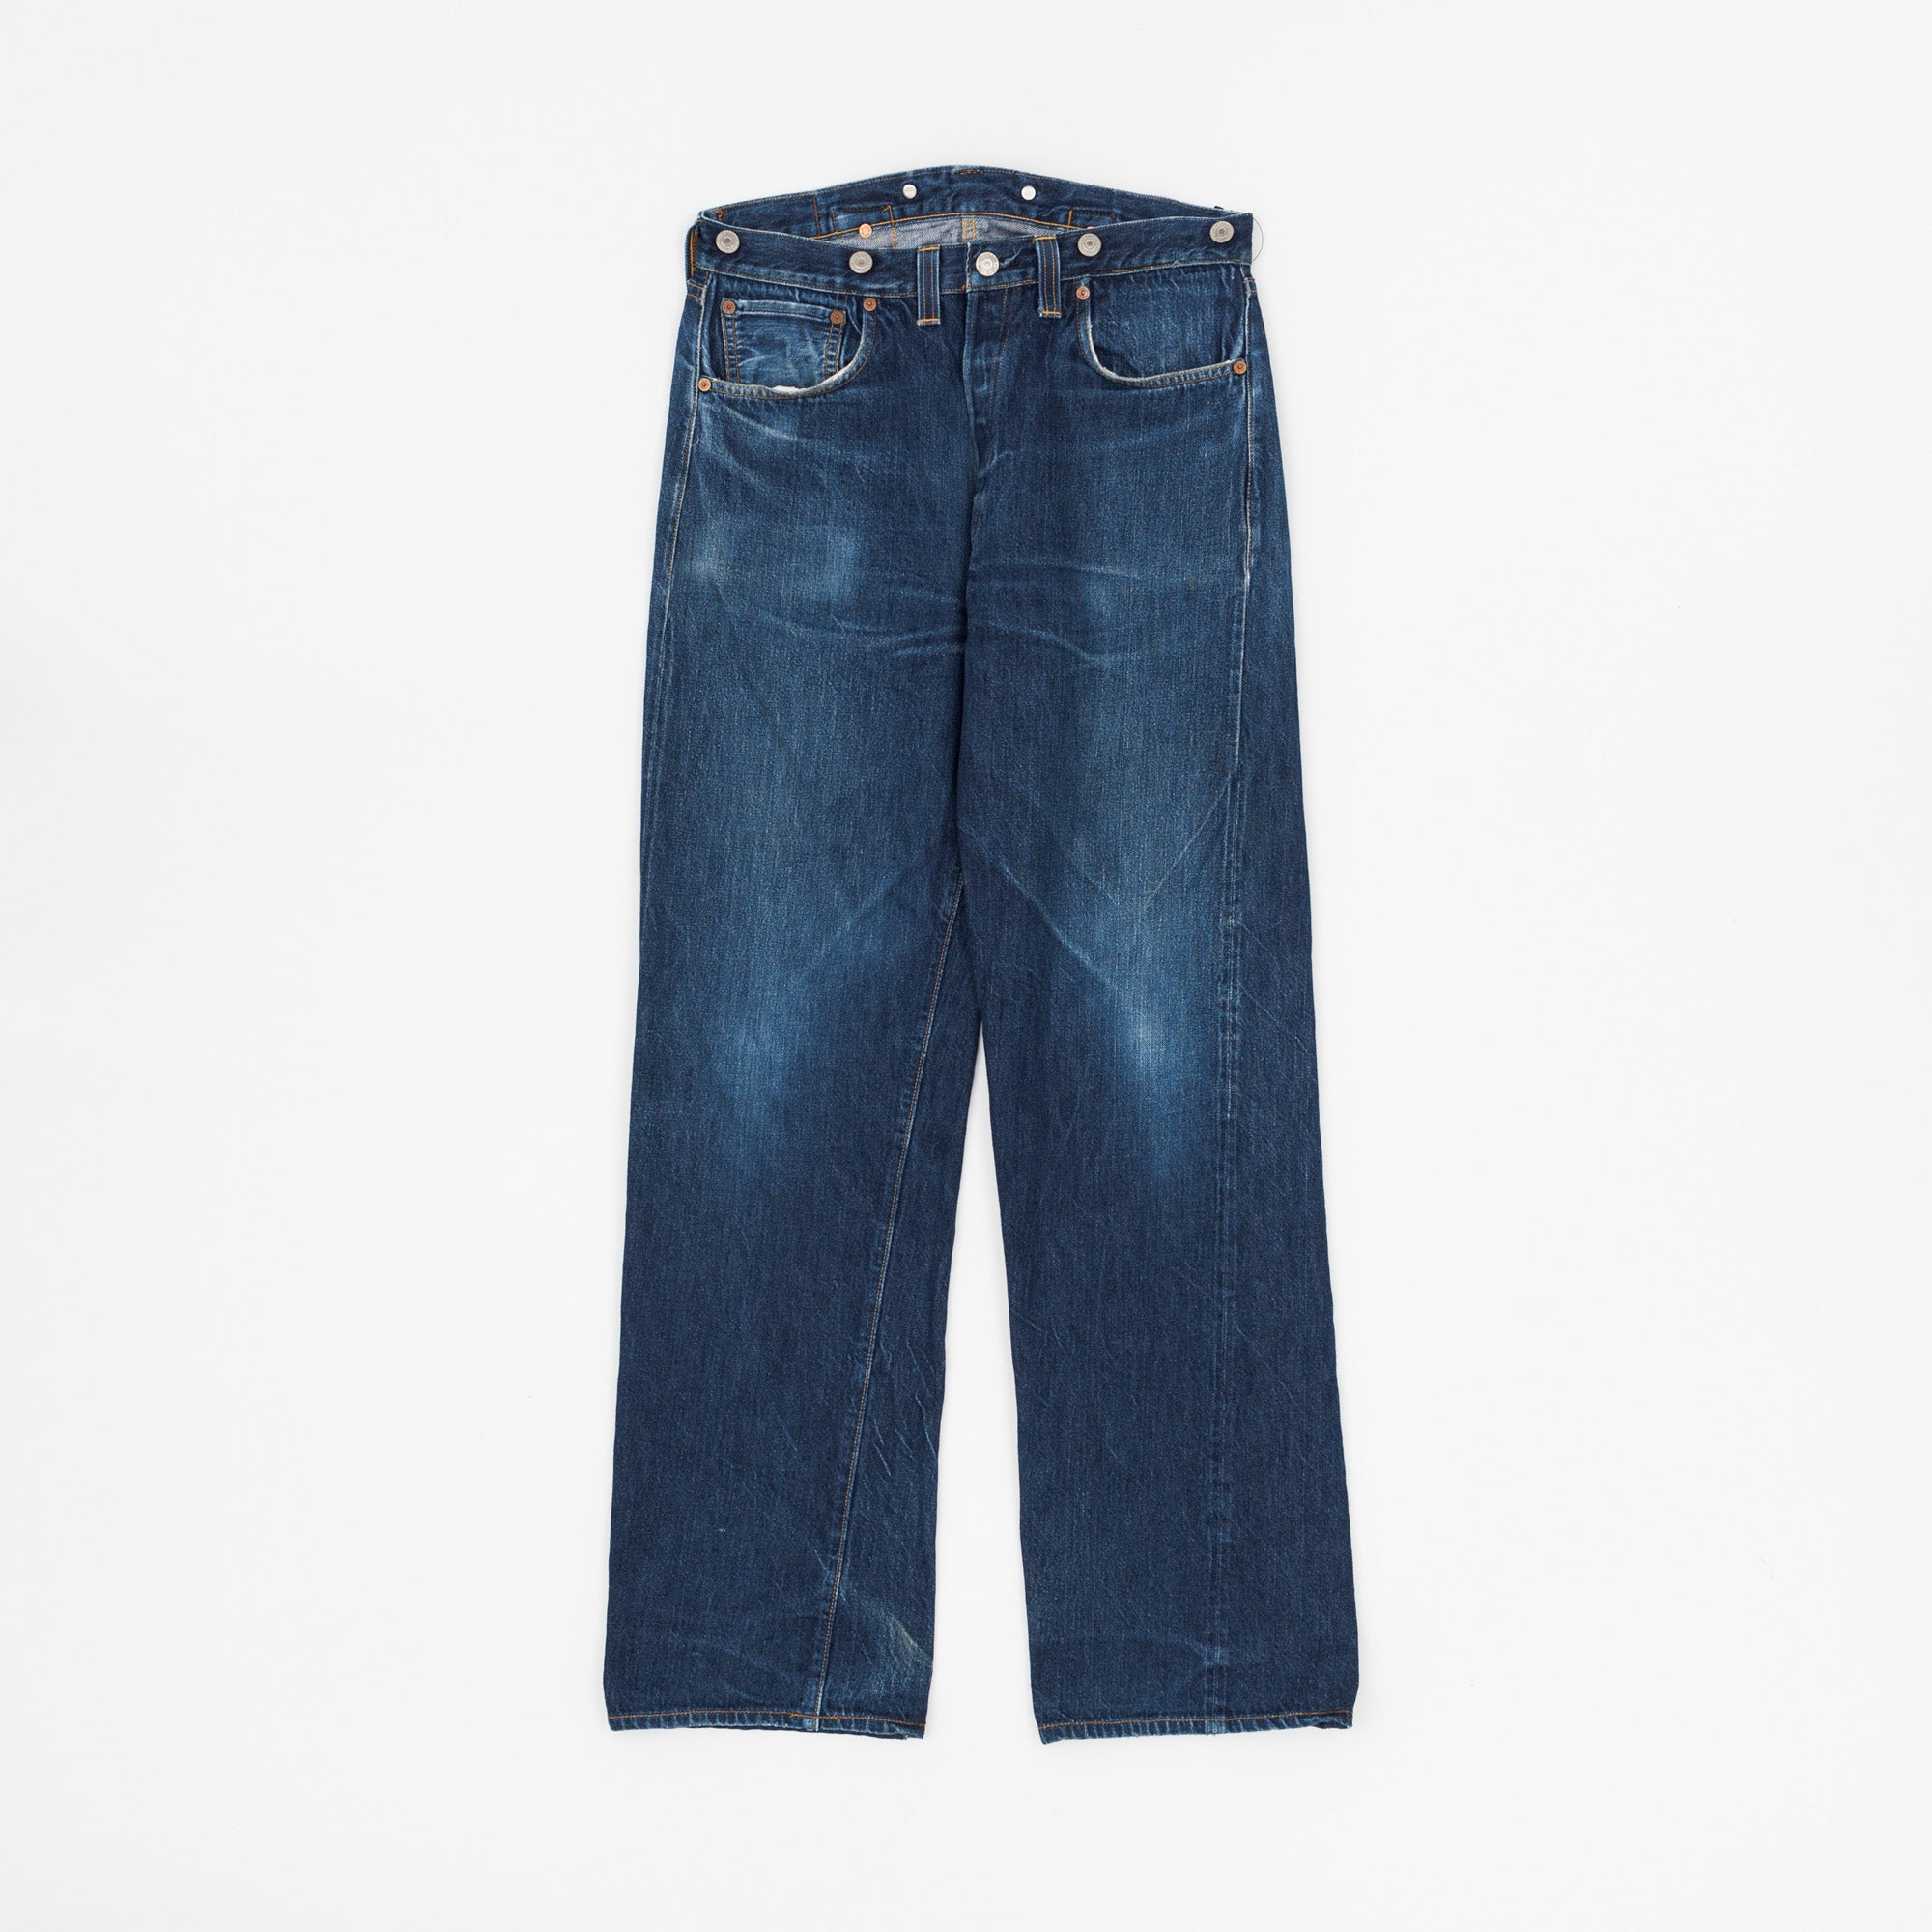 Levi's Vintage Clothing Cinch Back Denim